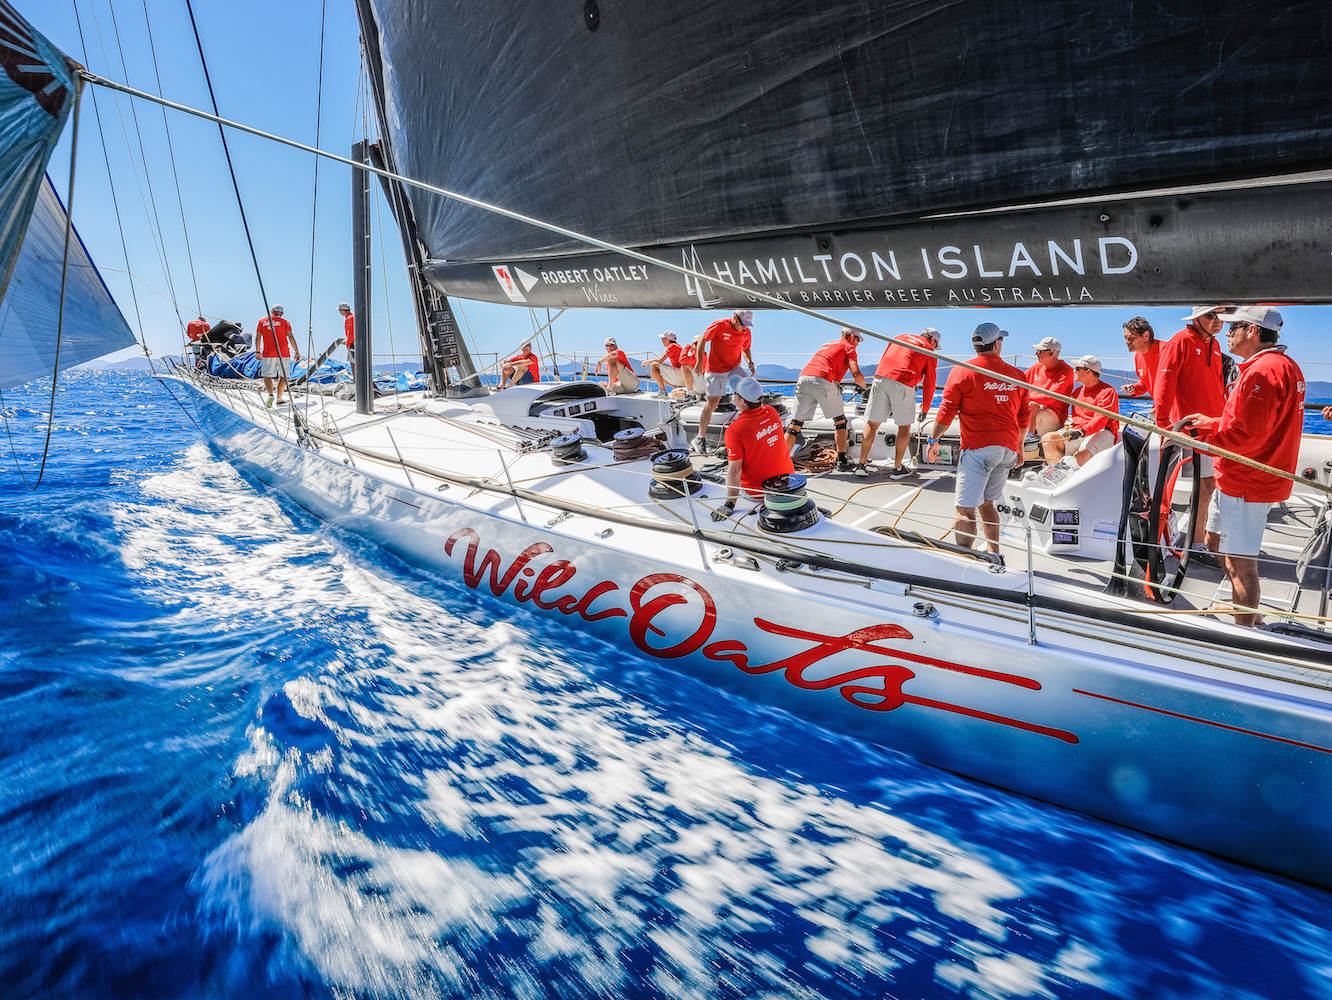 Repaired supermaxi yacht, Wild Oats XI, sets sail on overnight qualifier for the Rolex Sydney-Hobart Yacht Race